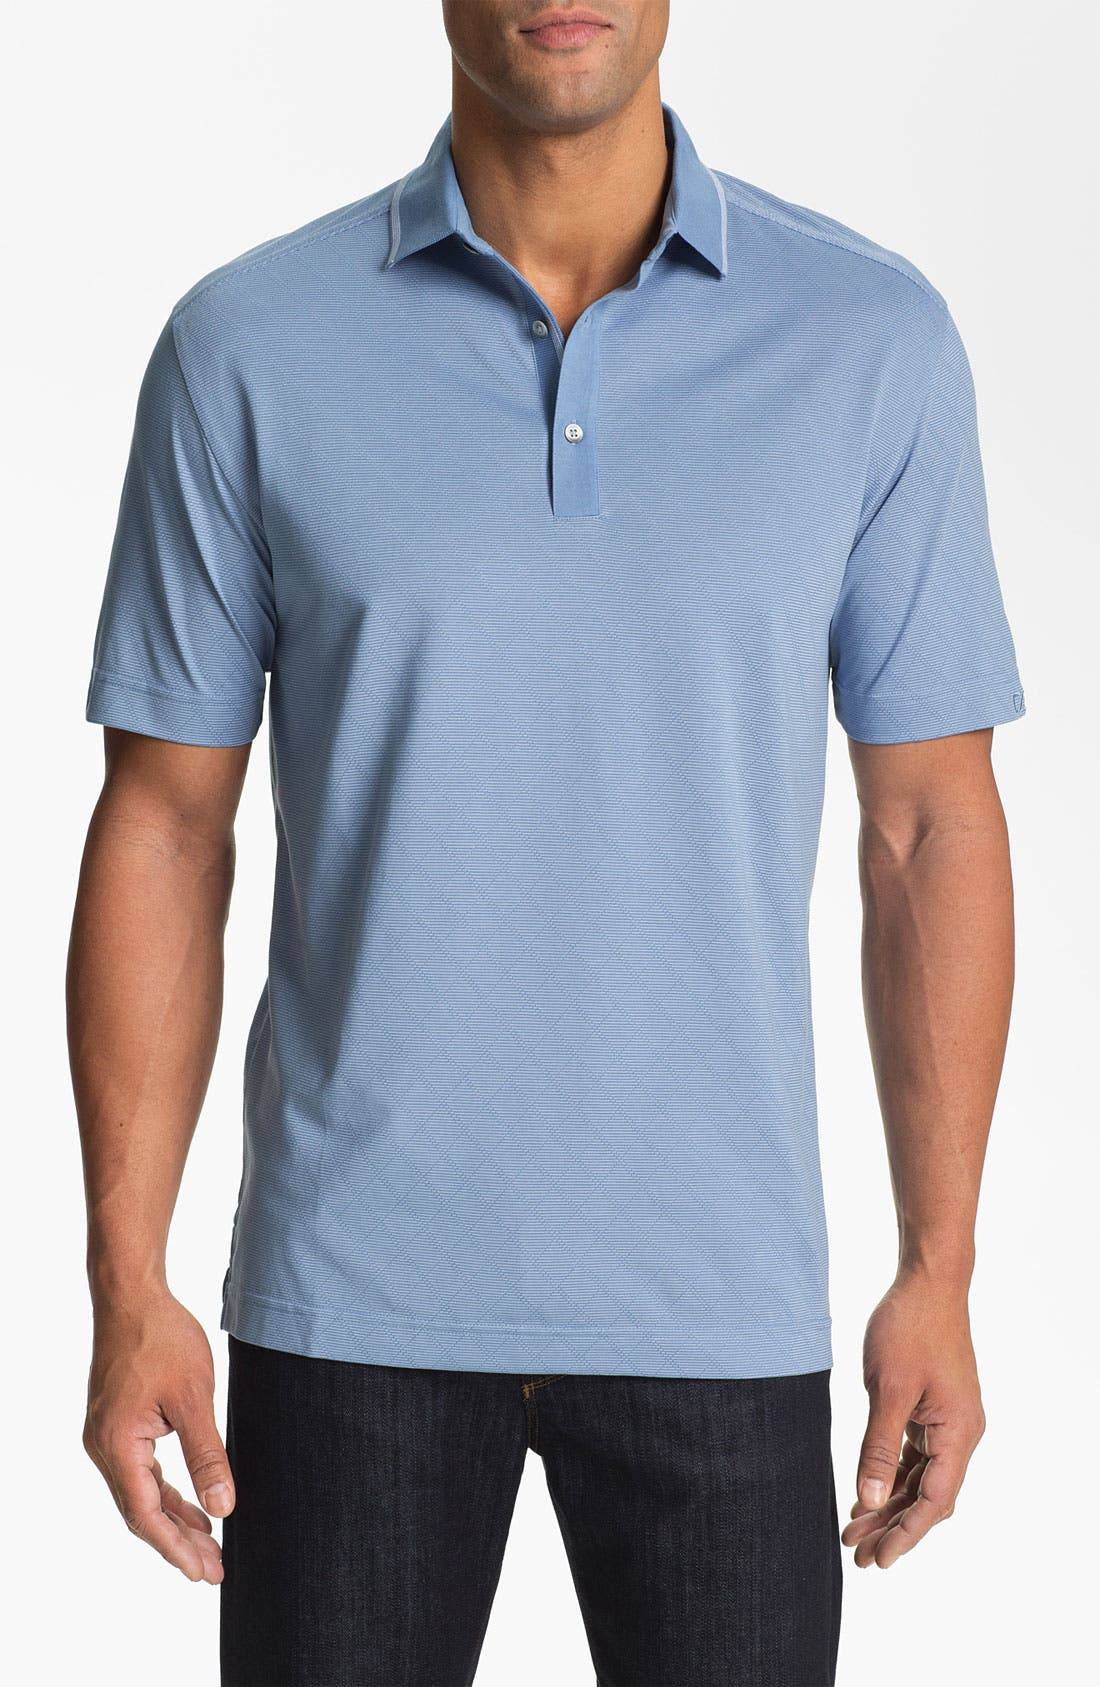 Alternate Image 1 Selected - Cutter & Buck 'Luxe - Embry' DryTec Golf Polo (Big & Tall)